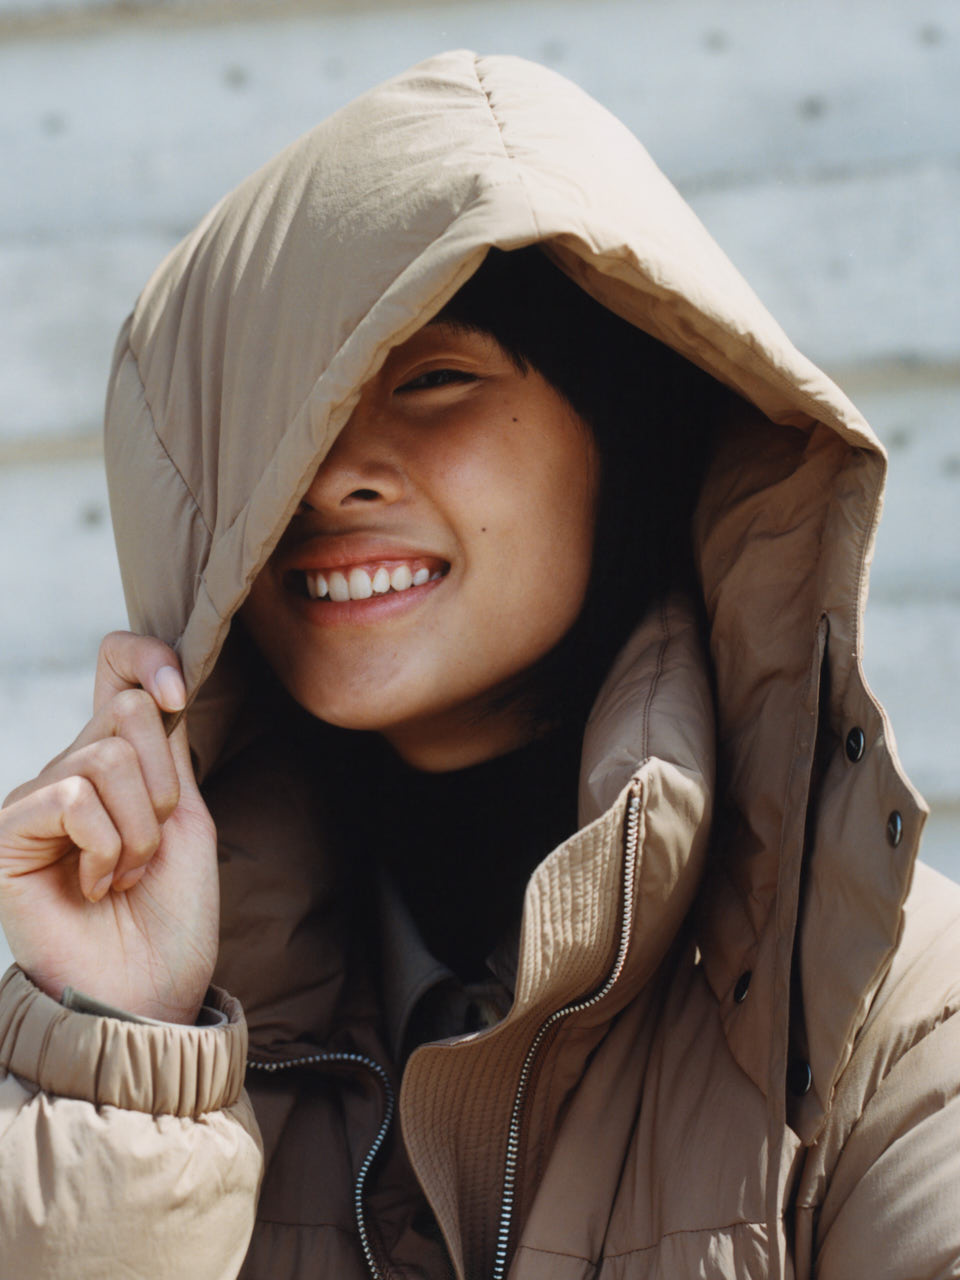 Female model smiling wearing an ARKET Upcycled Down jacket